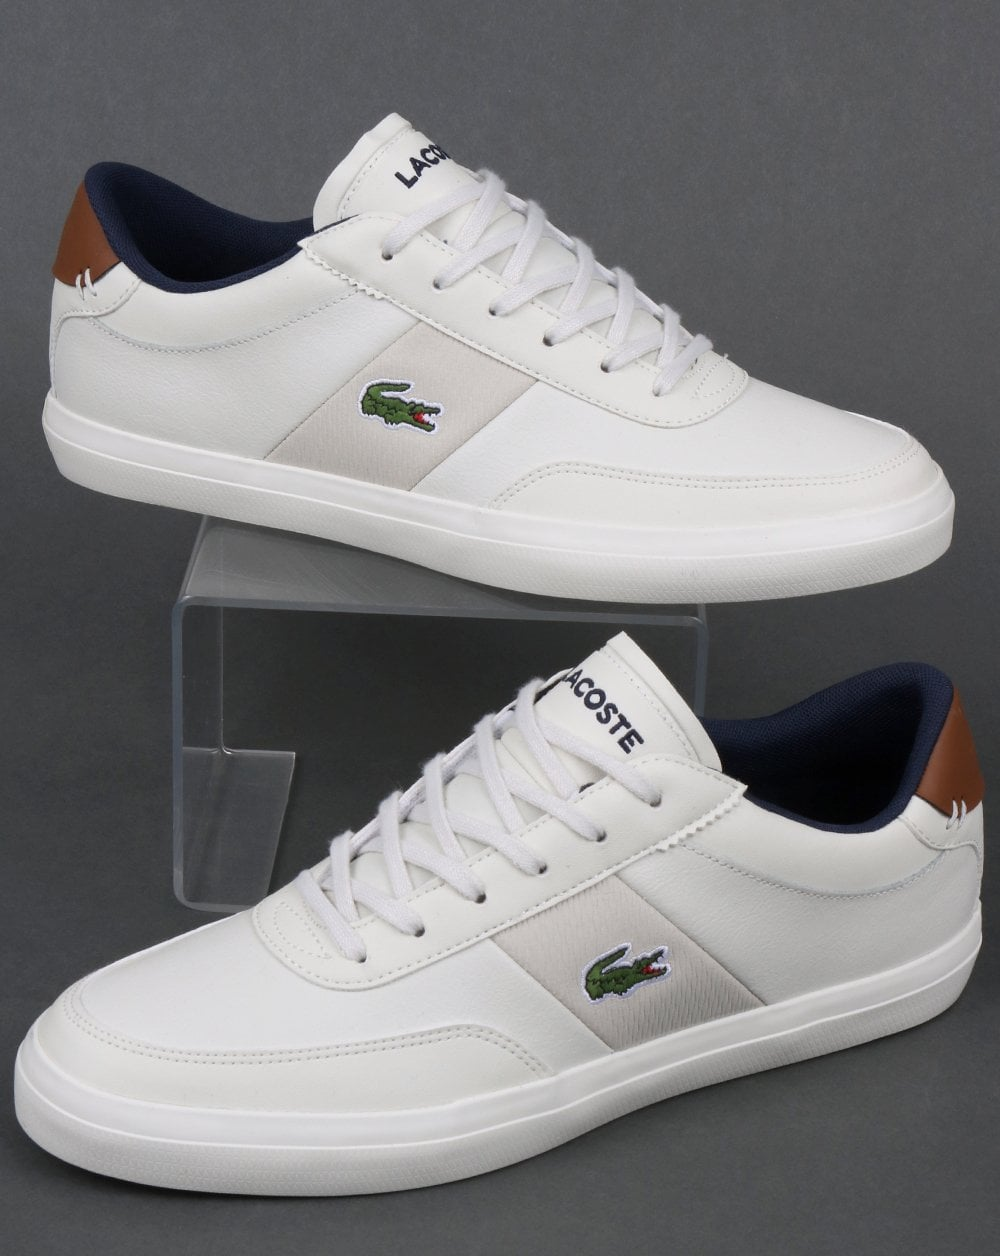 538786586 Lacoste Court Master 318 Trainer Off White/Navy,leather,shoes,summer